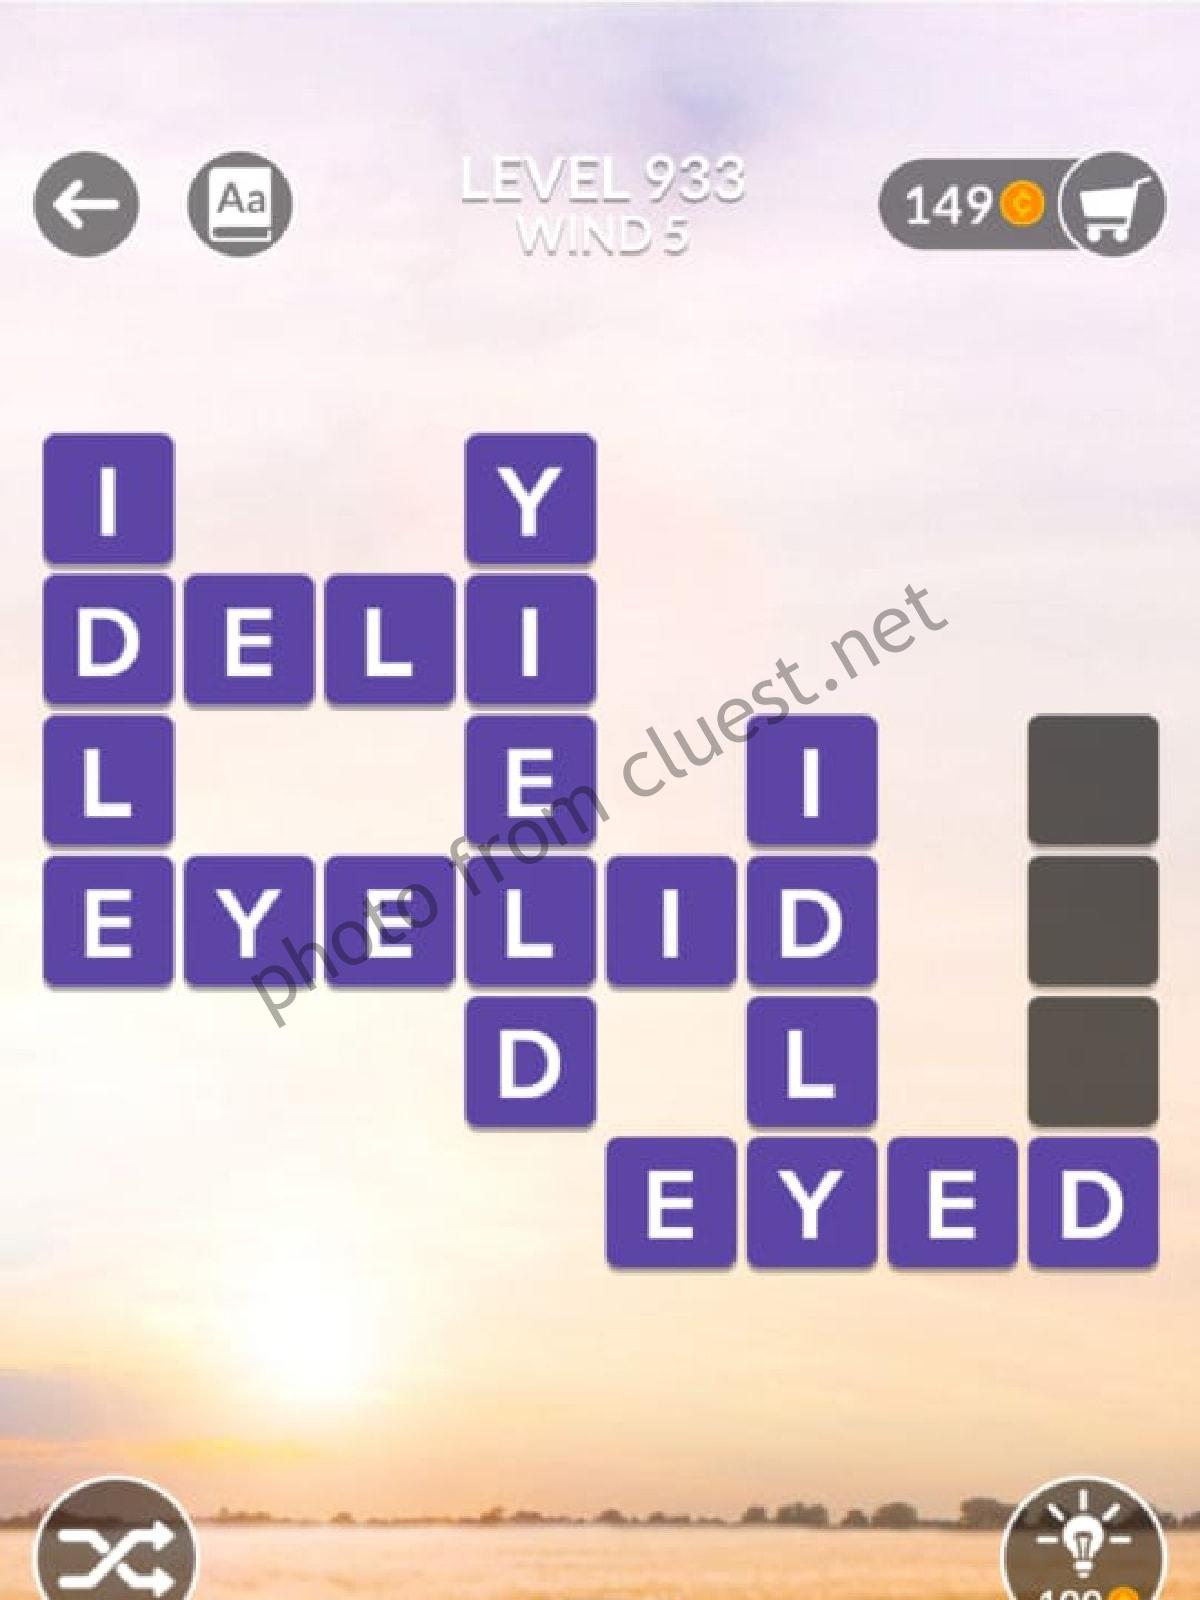 Wordscapes Level 933 Wind 5 Answers Cluest